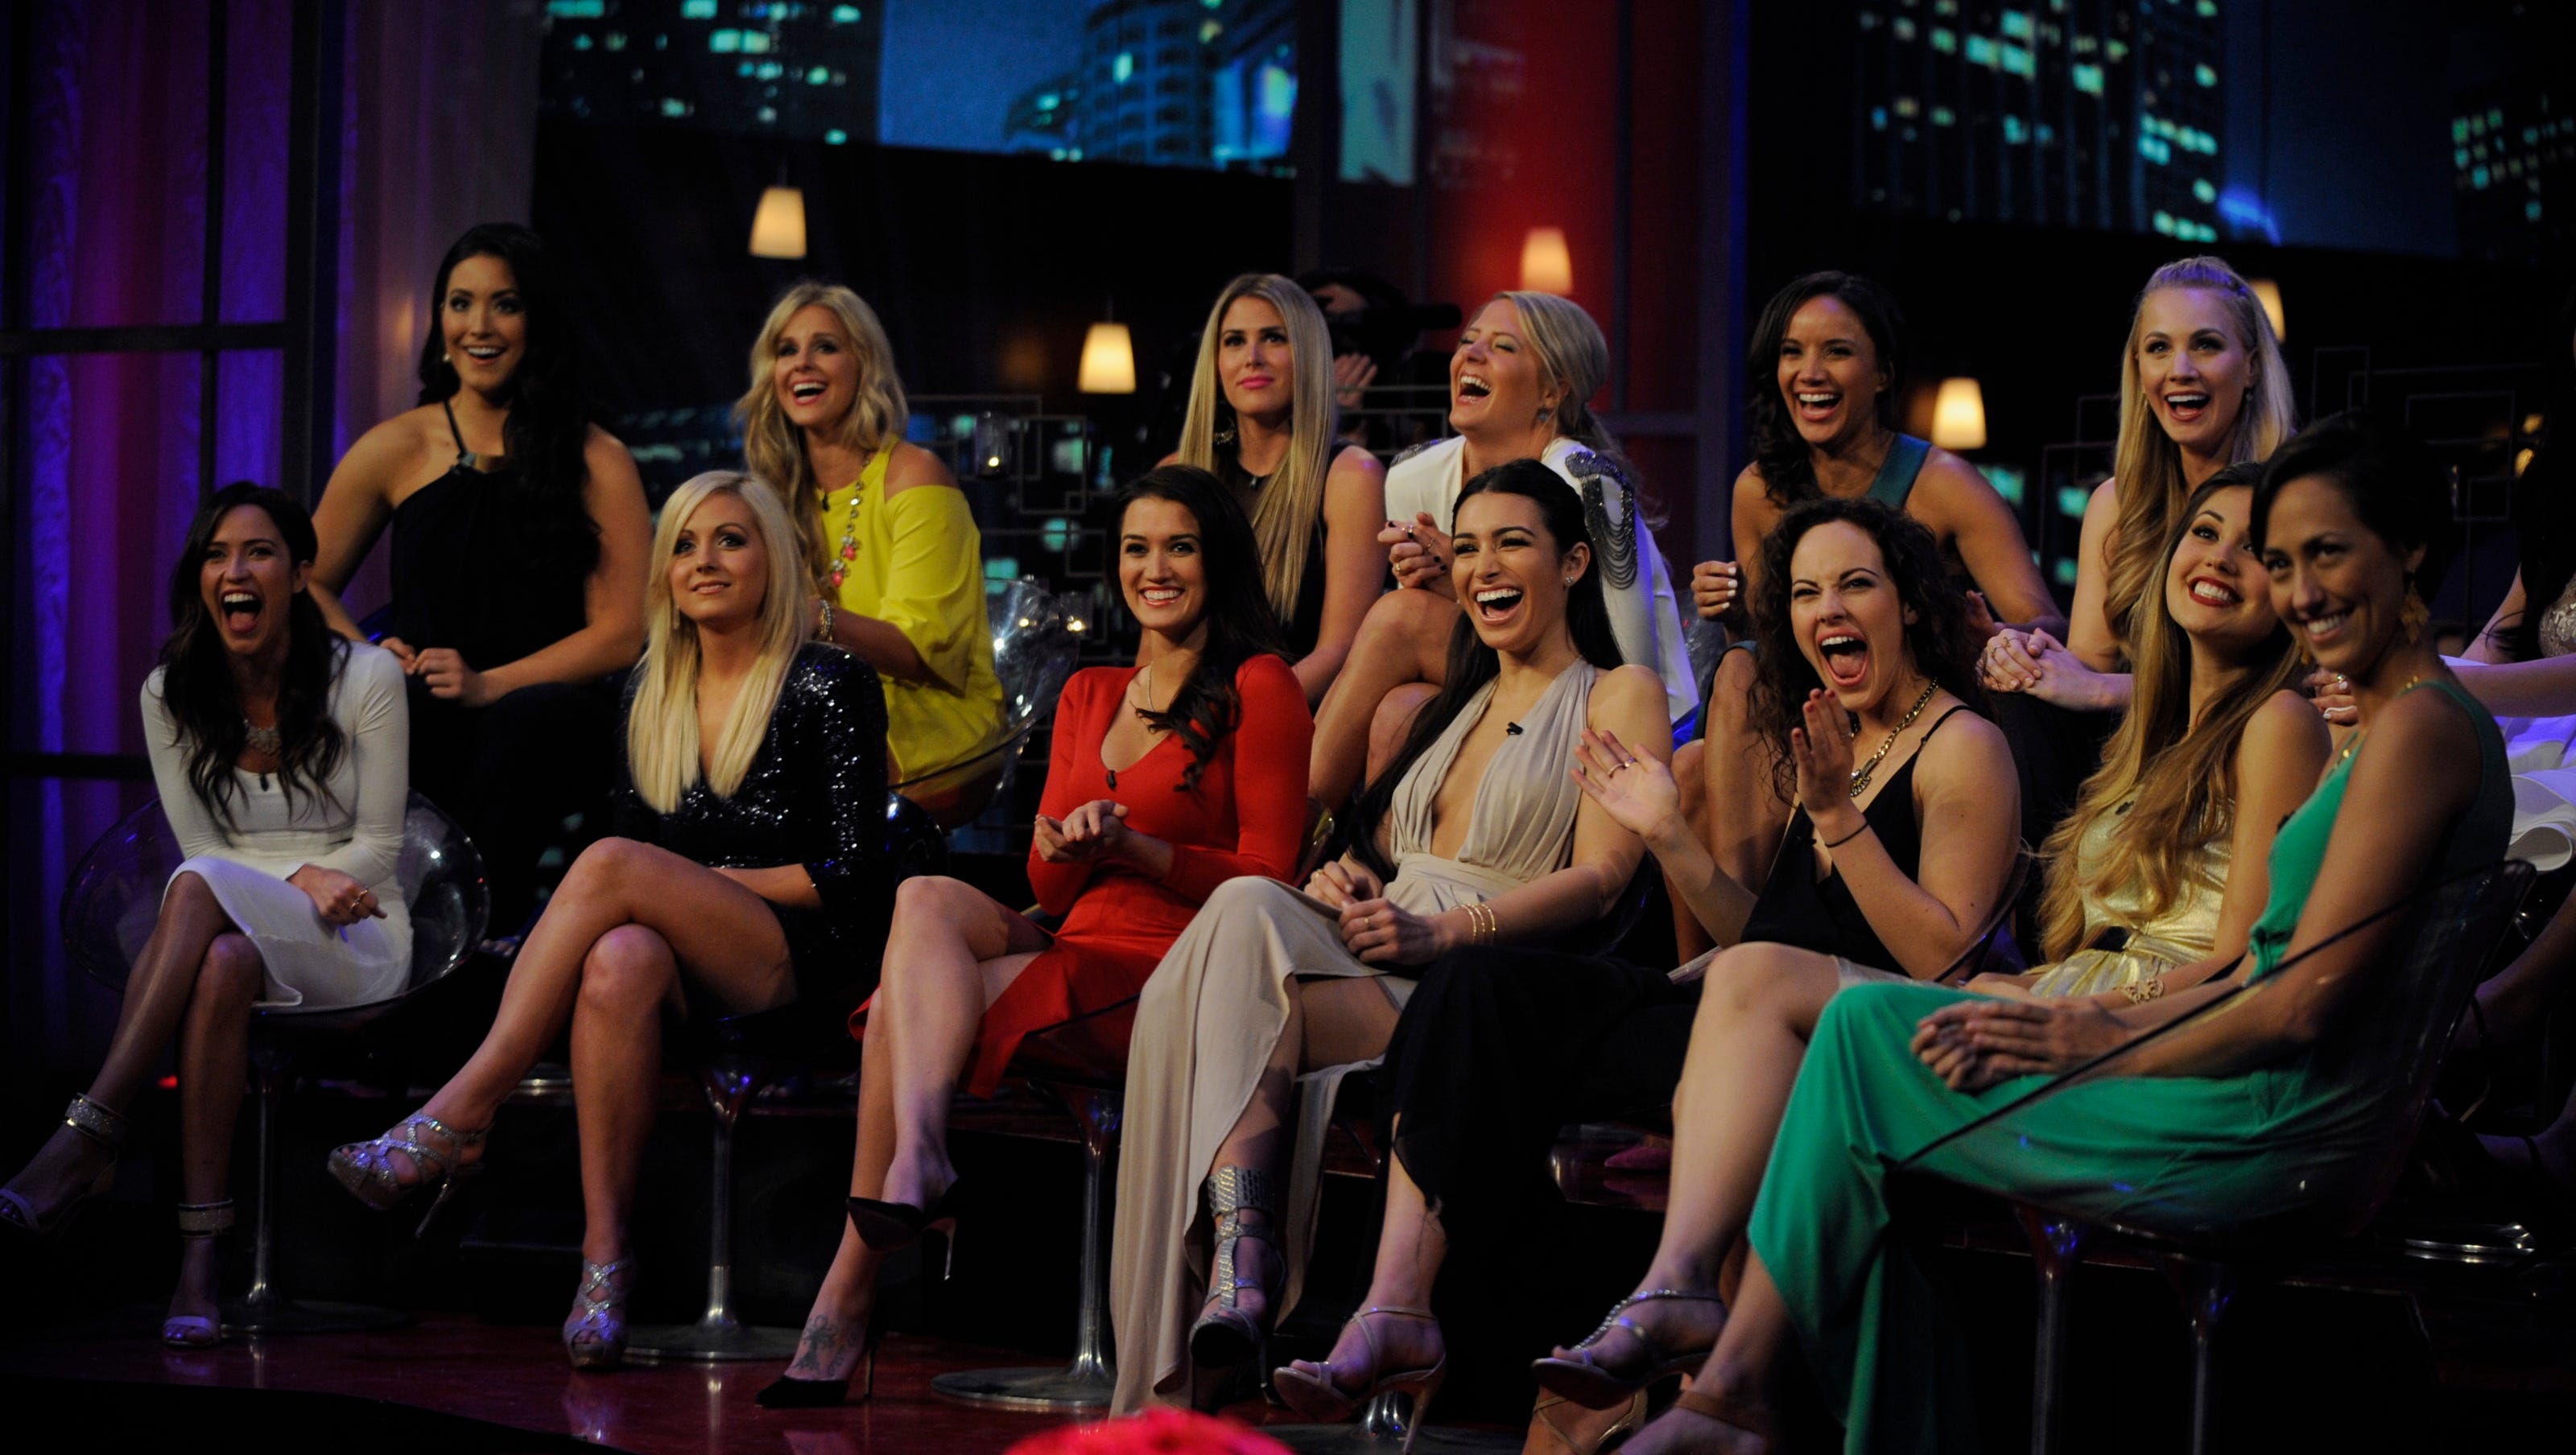 Crazy Bachelor women reunite to Tell All